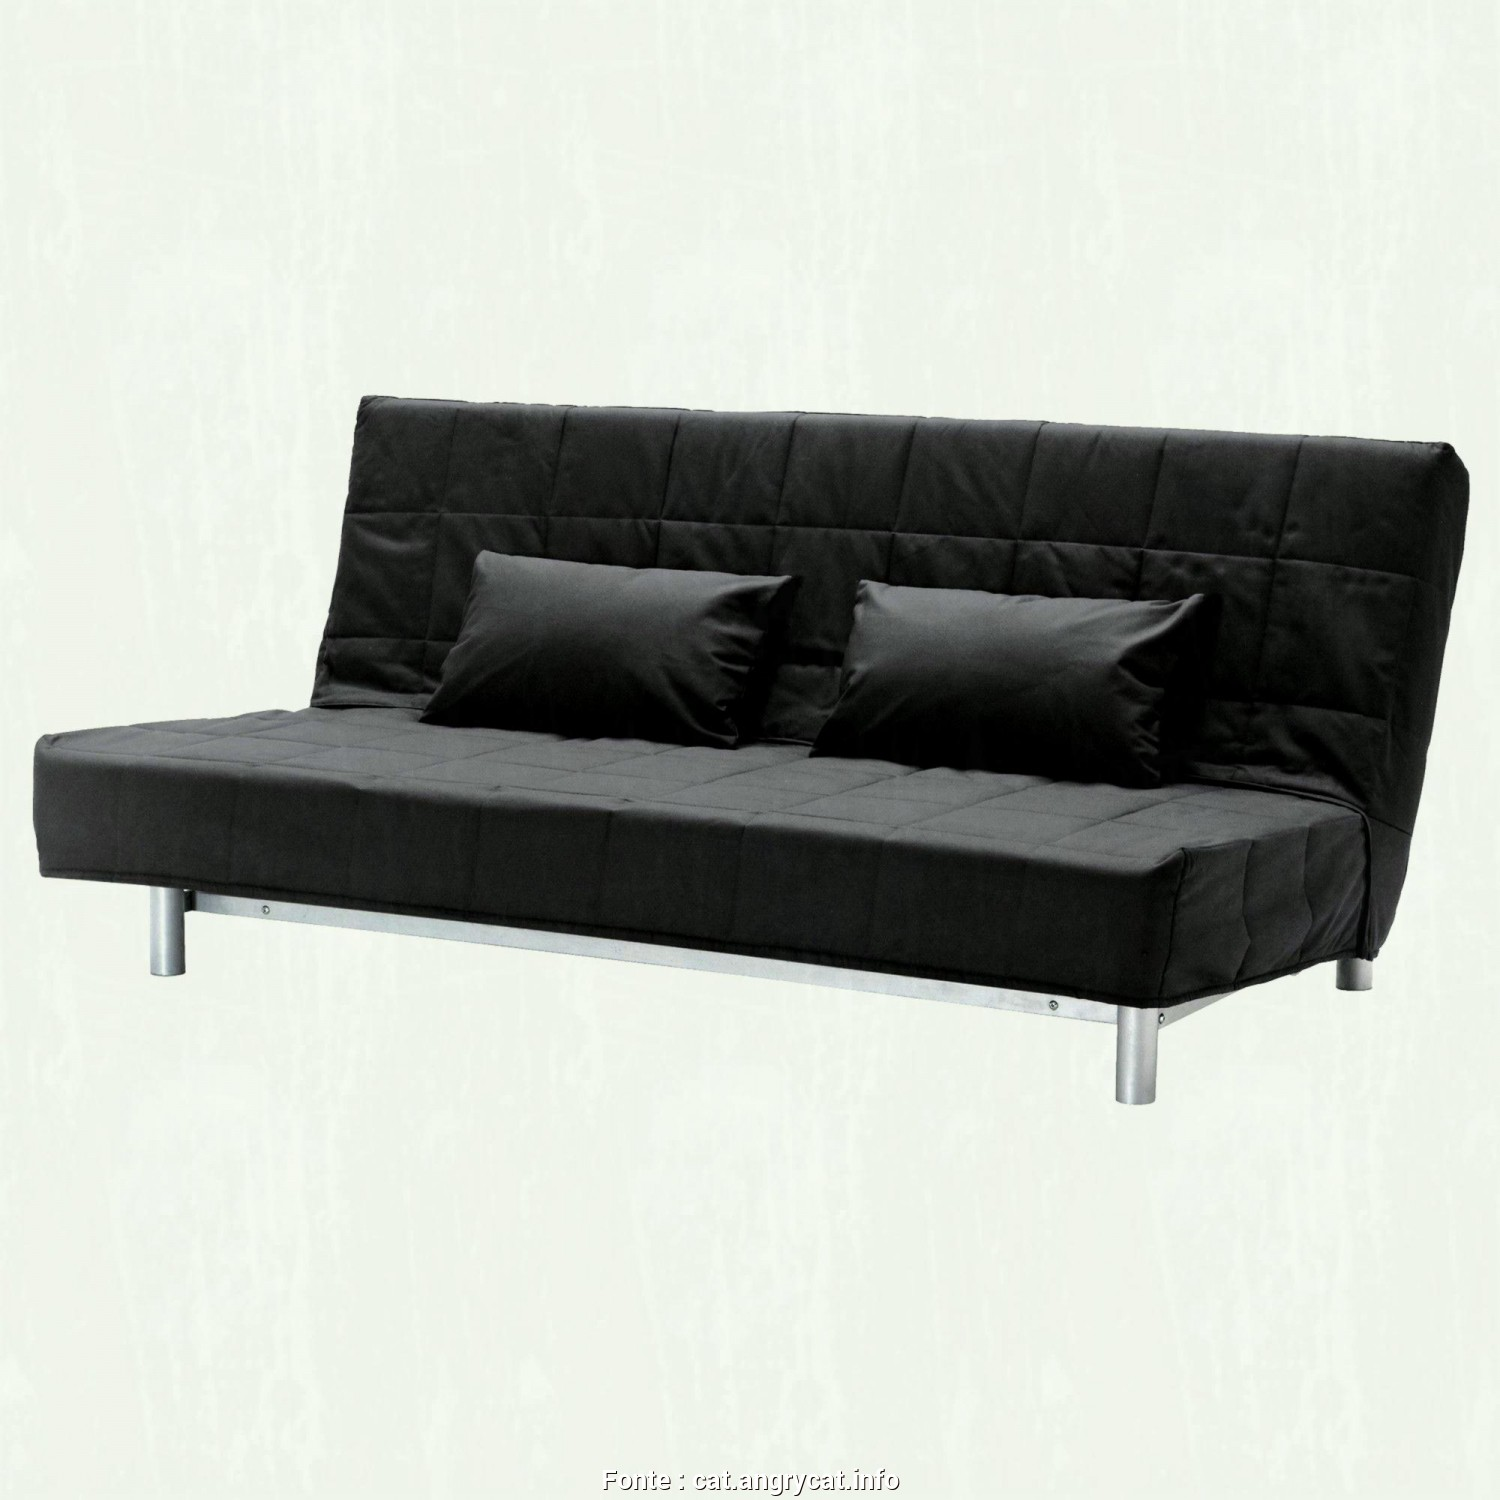 Kanapa Asarum Z Ikea, Casuale Futon Convertible Ikea Beautiful Beddinge, S Three Seat Sofa, Ransta Dark Grey Of Chair Perfect